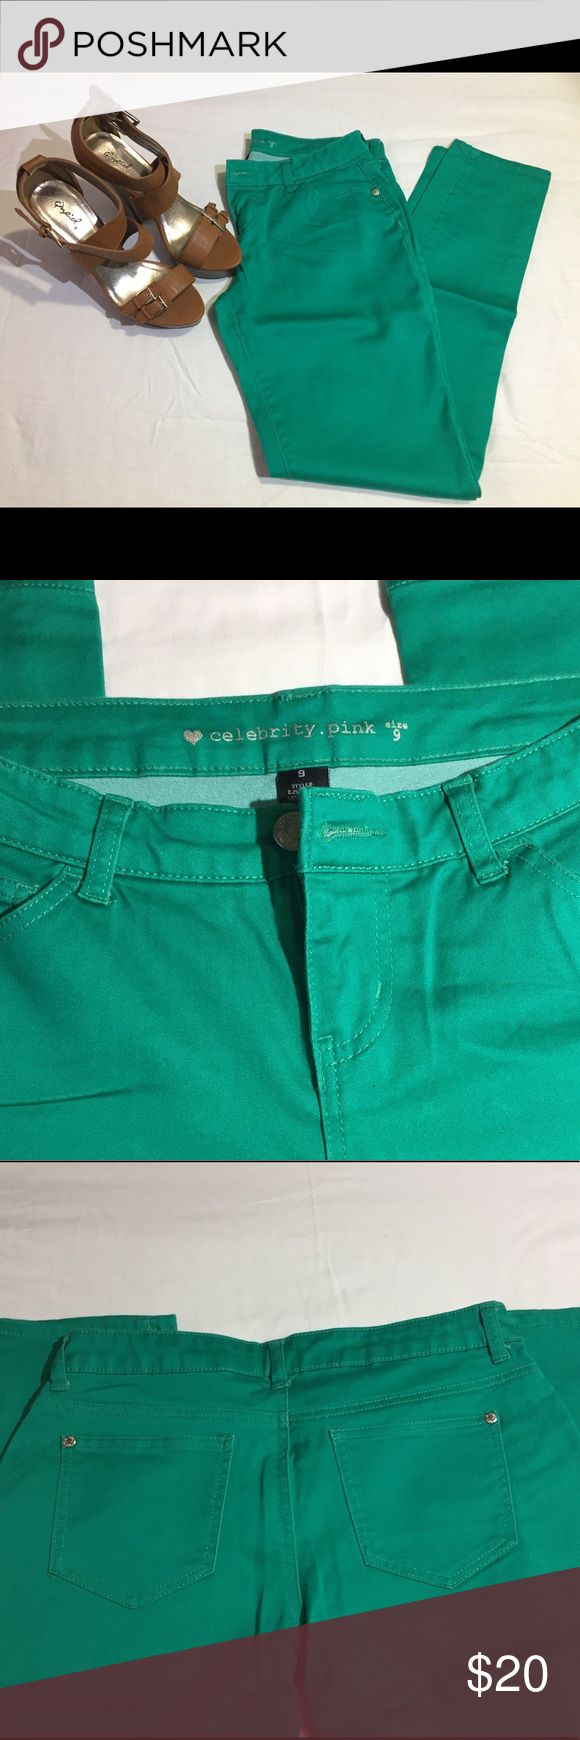 Green Skinny Celebrity Pink Pants Like new green skinny Celebrity Pink pants/jeggings. Good amount of stretch to them, mid rise, only wore once. Heels pictured are not included but are for sale in my closet! Celebrity Pink Pants Skinny